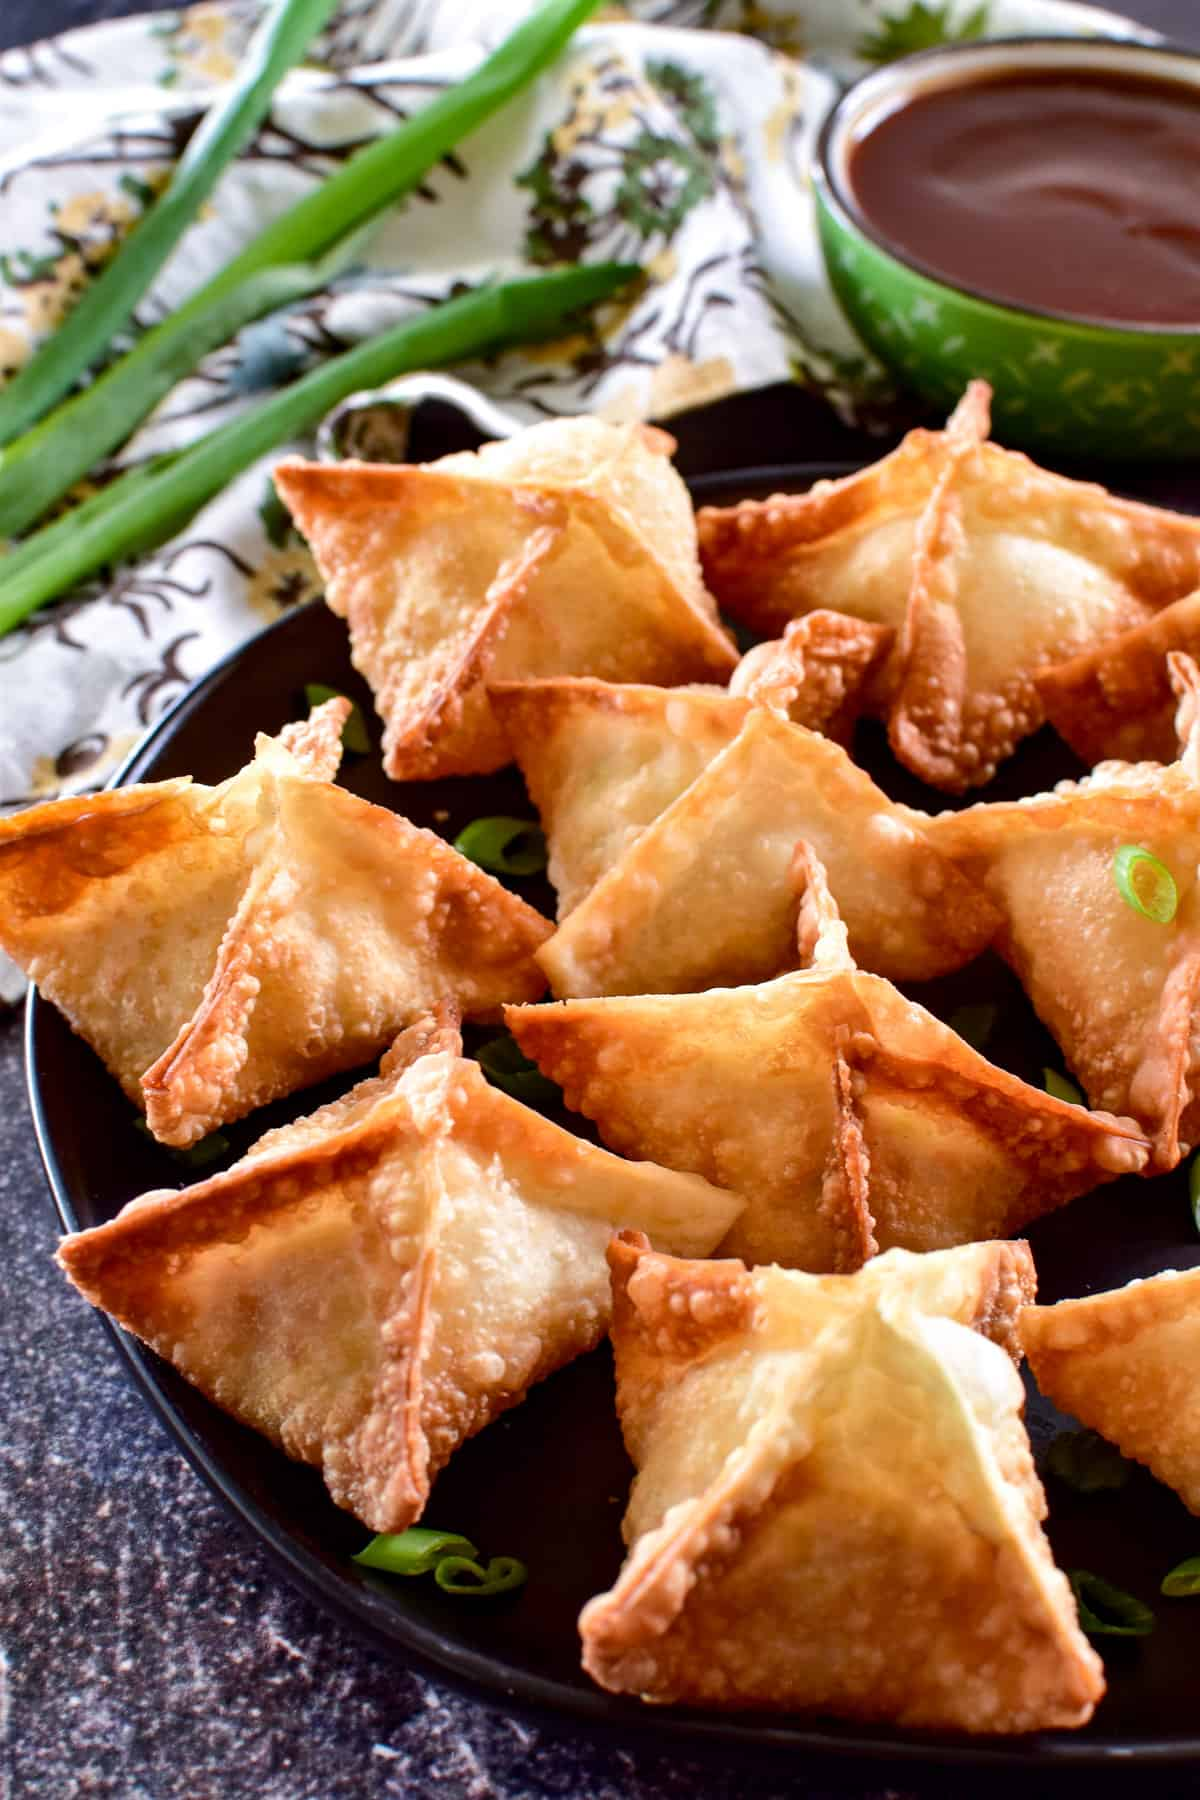 Side view of Crab Rangoon with green onions and sweet & sour sauce